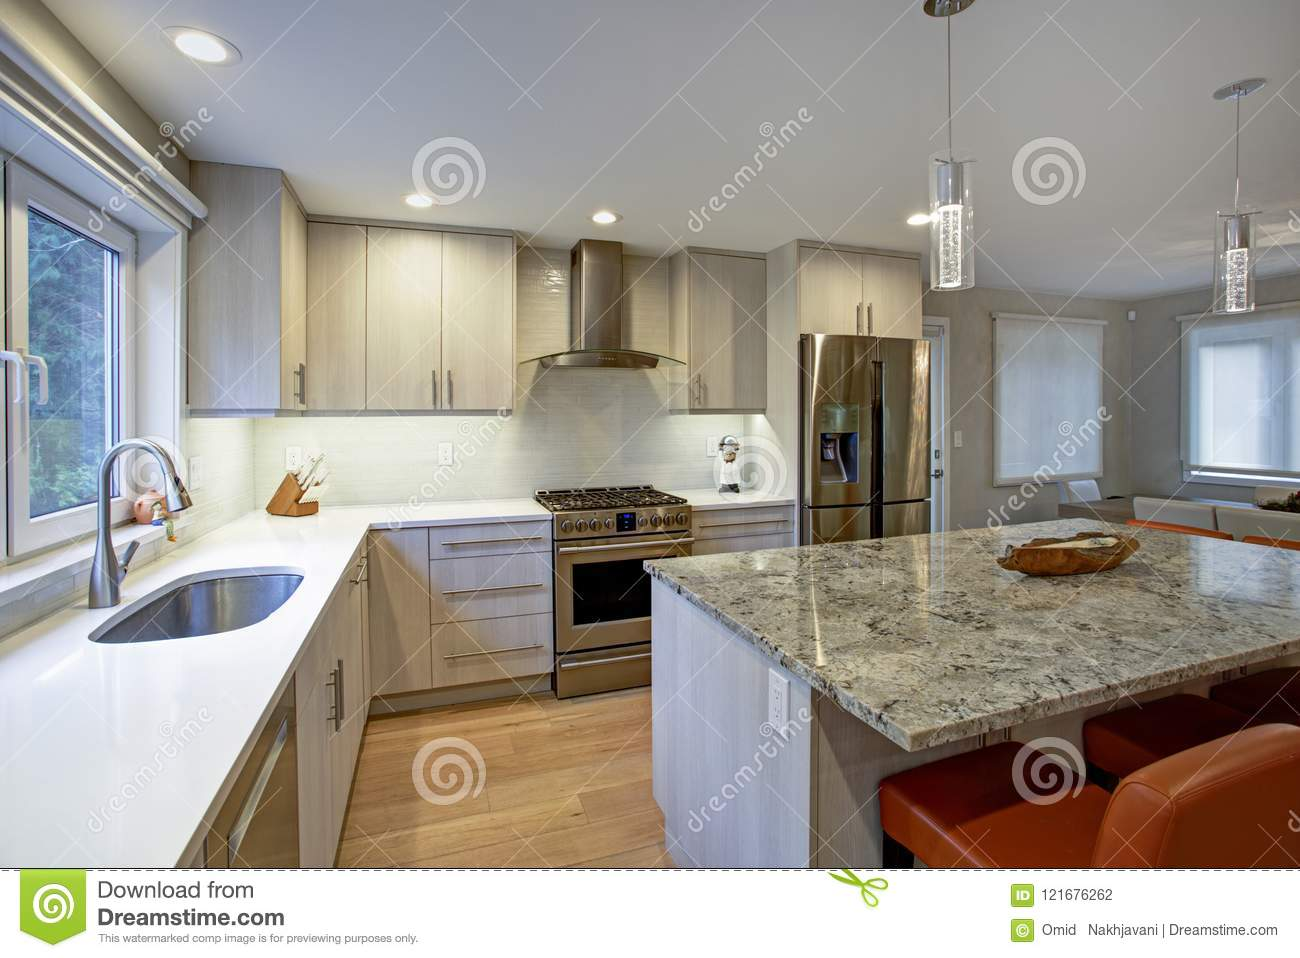 Lovely Kitchen Room With Kitchen Island Stock Photo - Image ...